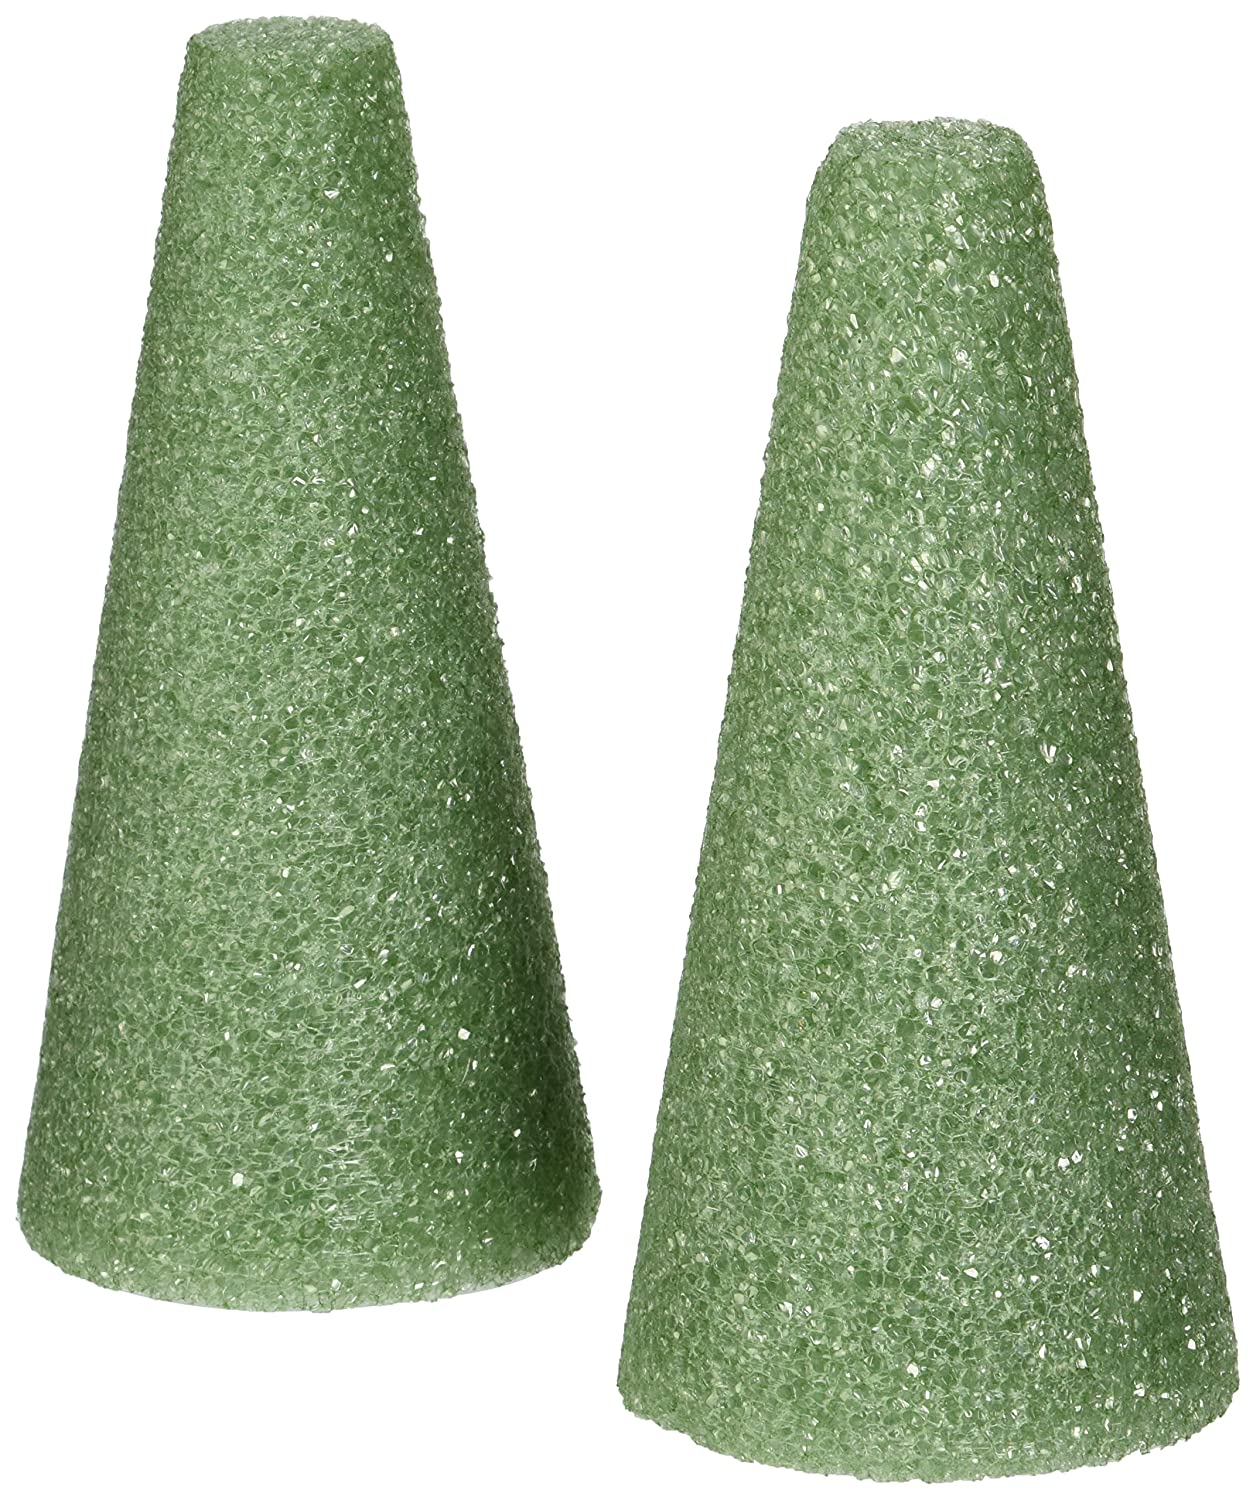 Styrofoam Cones 6X3 2/Pkg-Green Notions - In Network 287207